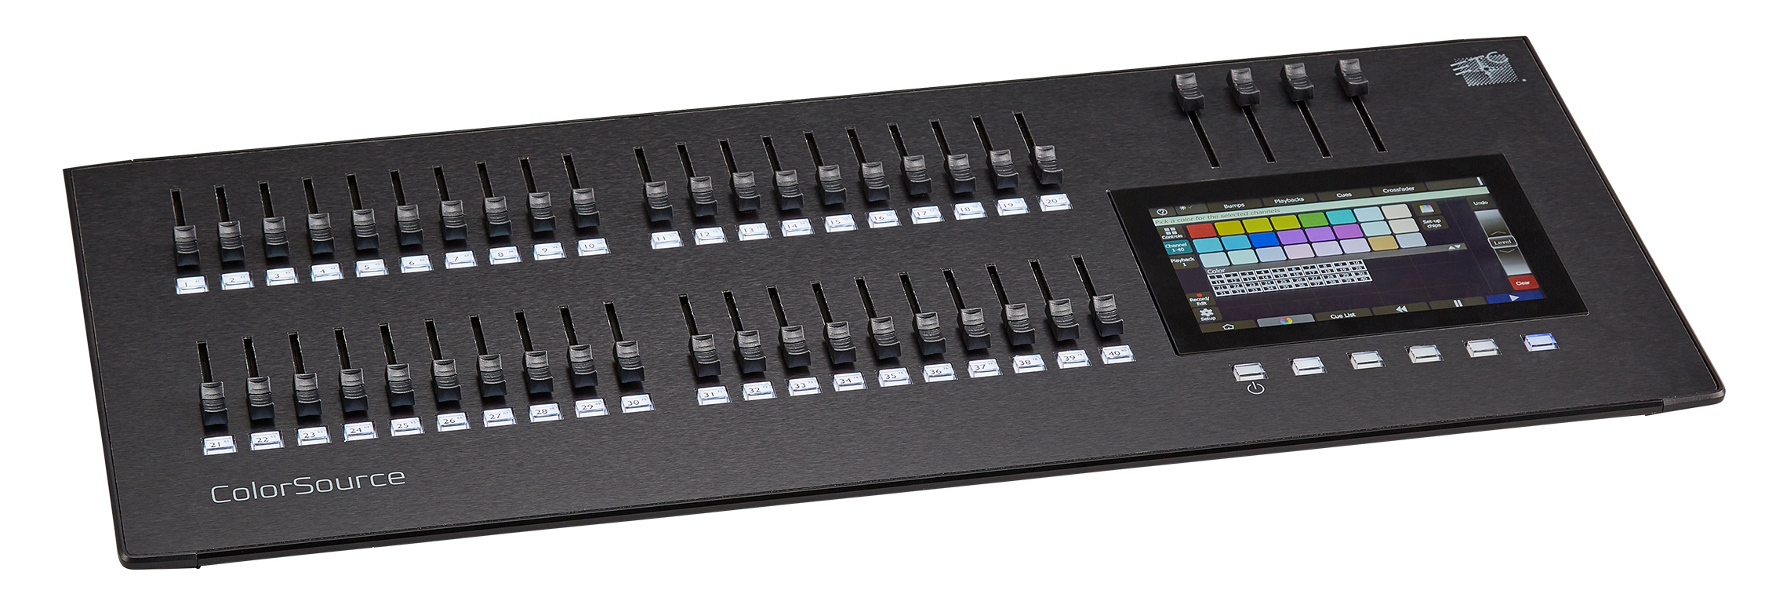 ETC ColorSource 40 Board - DMX Control Console For 80 Fixtures With 40 Faders, Multi-Touch Display